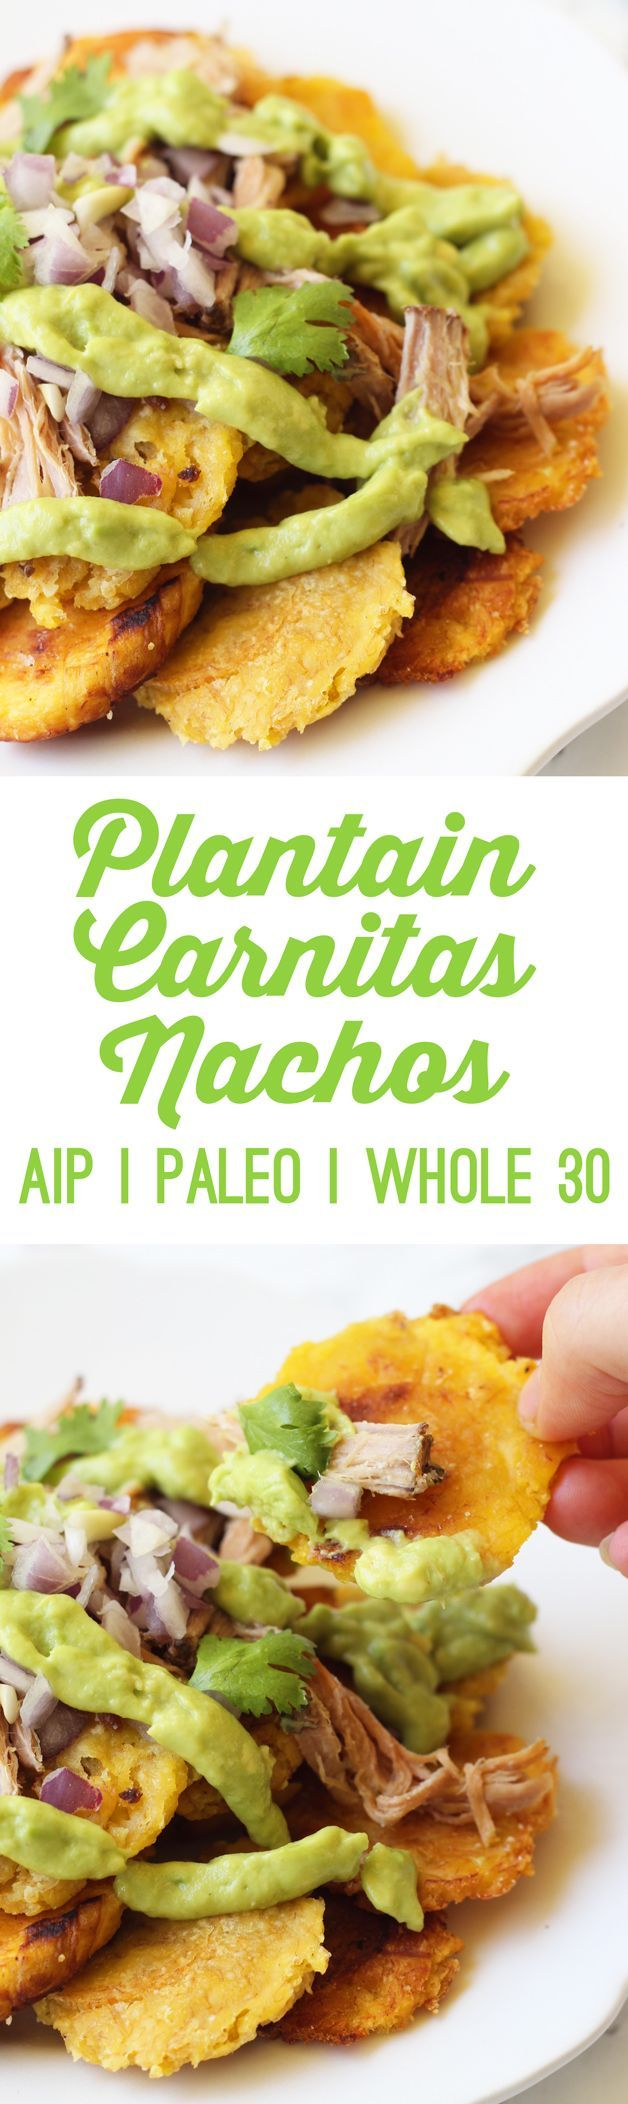 Plantain Carnitas Nachos (Paleo, AIP, Whole 30) - Unbound Wellness